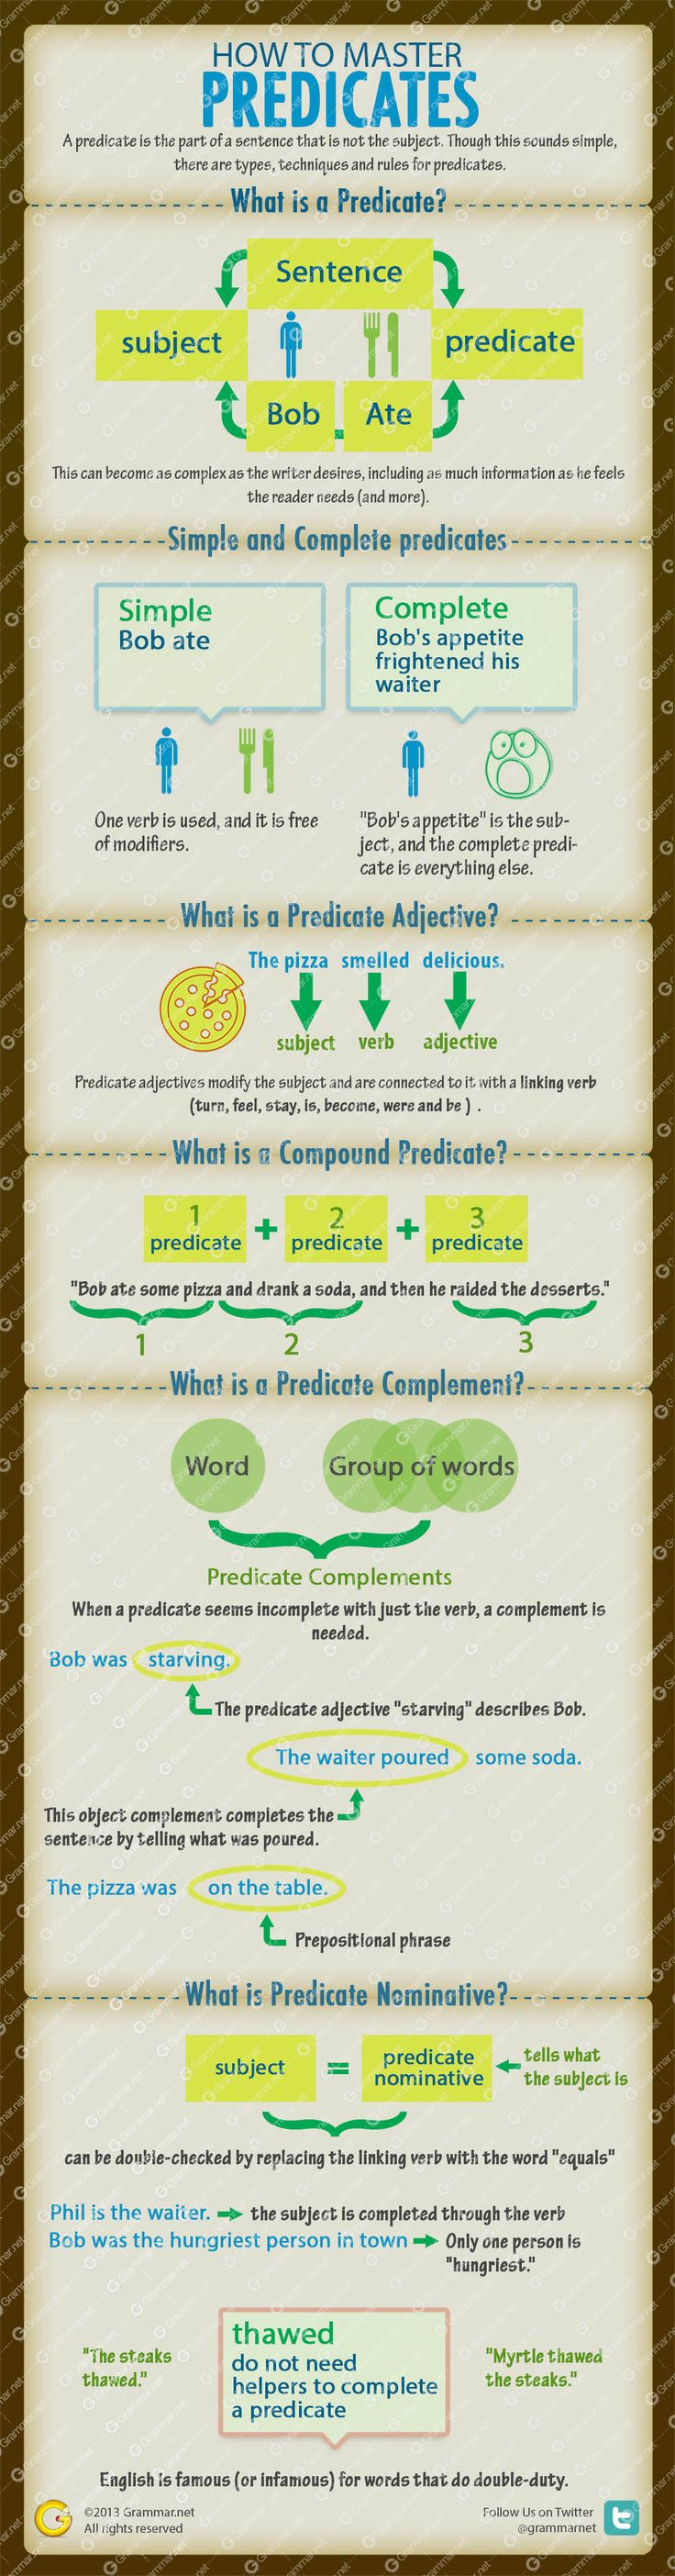 How to master predicates [infographic] | Grammar Newsletter - English Grammar Newsletter